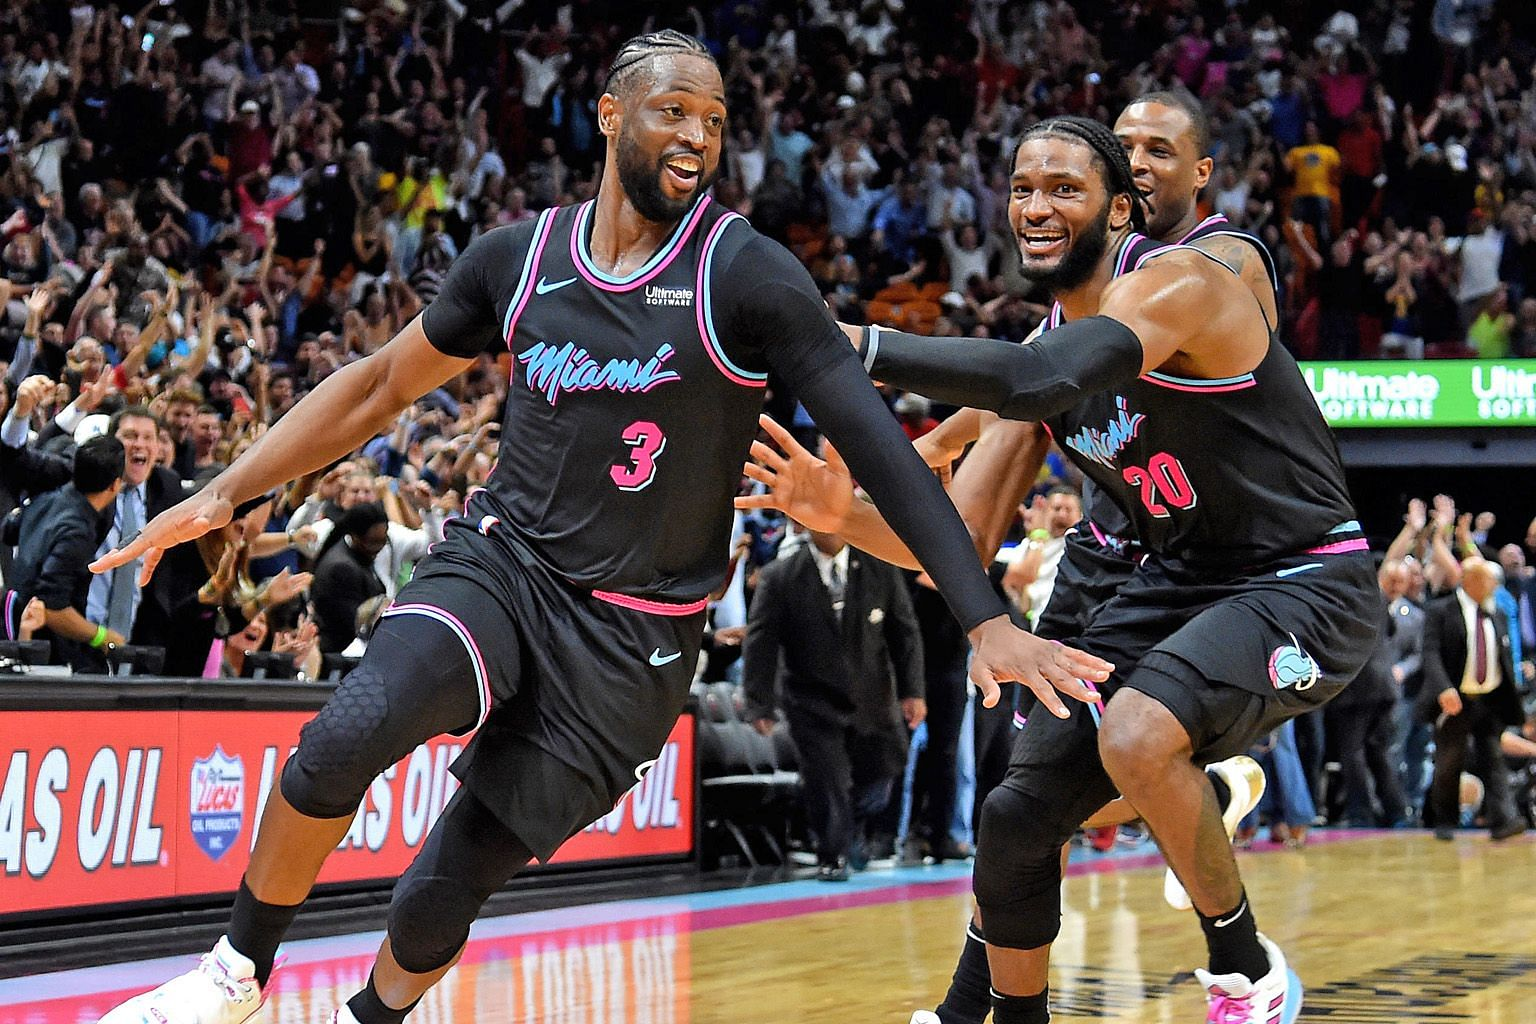 Miami Heat star Dwyane Wade (left) celebrating with Justise Winslow after making the game-winning basket against champions Golden State Warriors at American Airlines Arena.